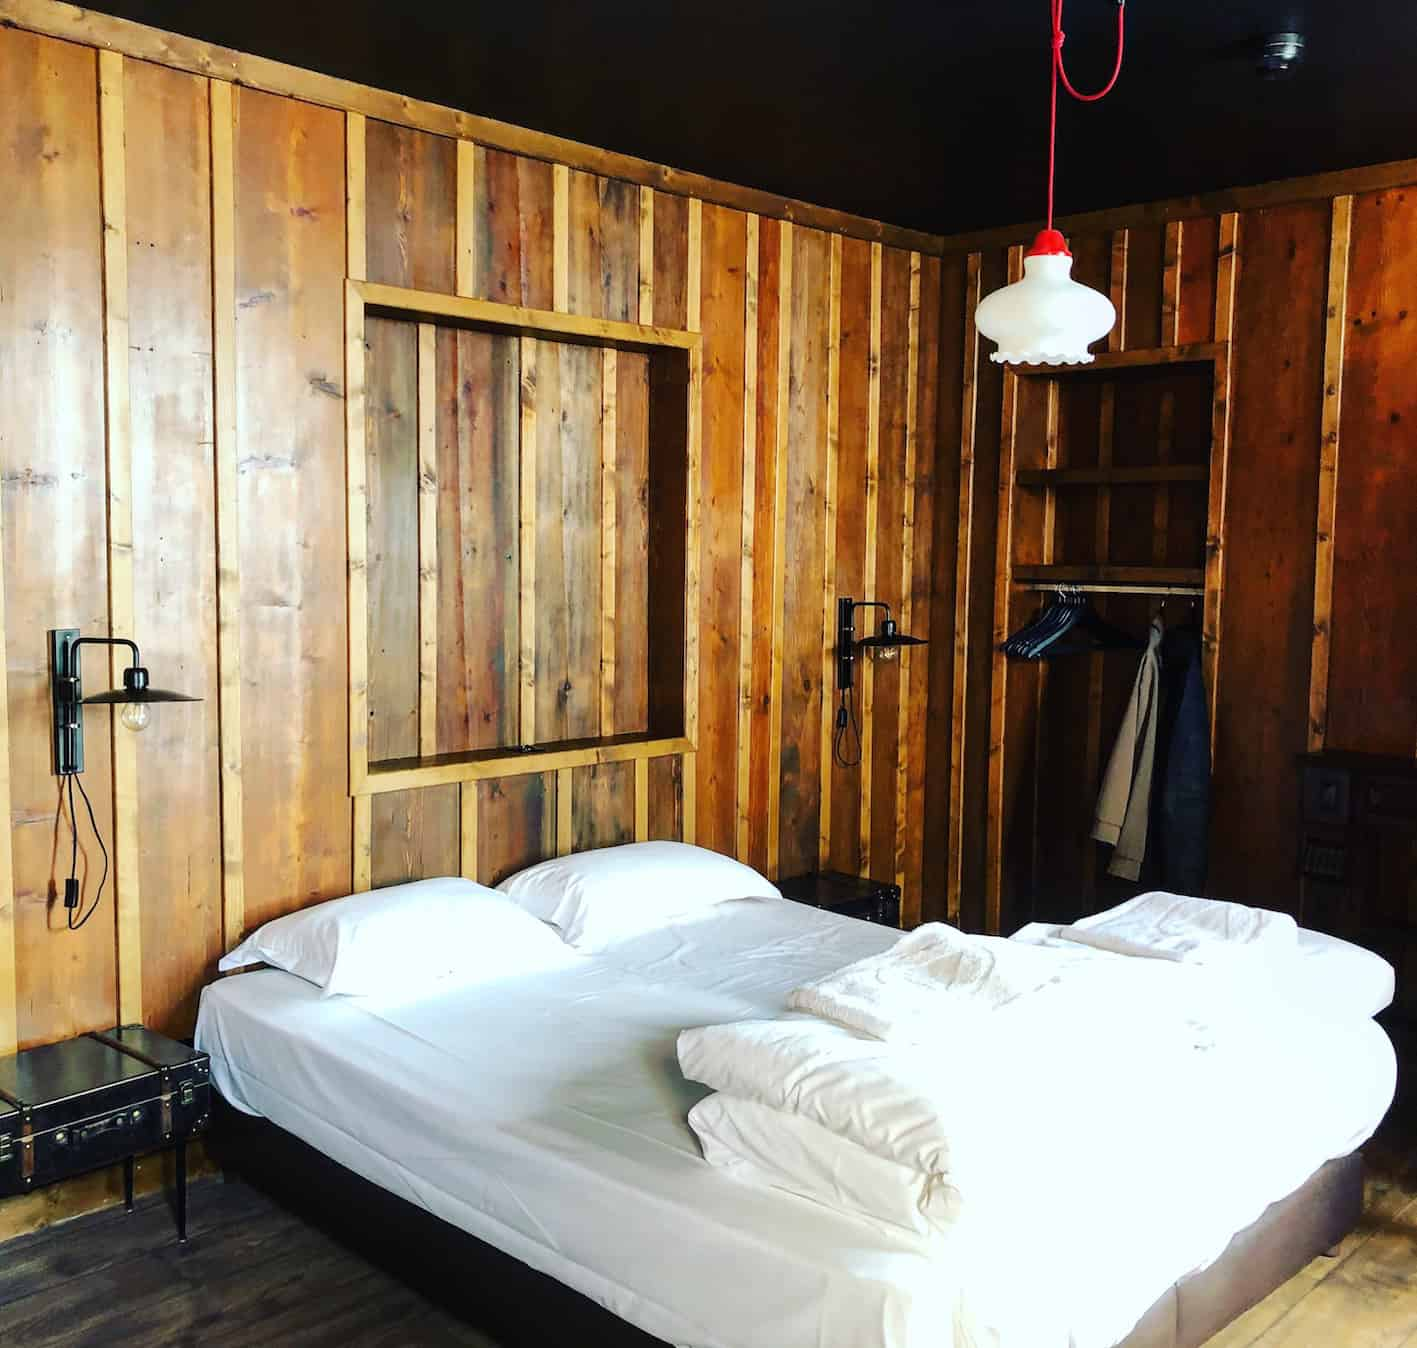 where to stay in chamonix - terminal neige offers family rooms